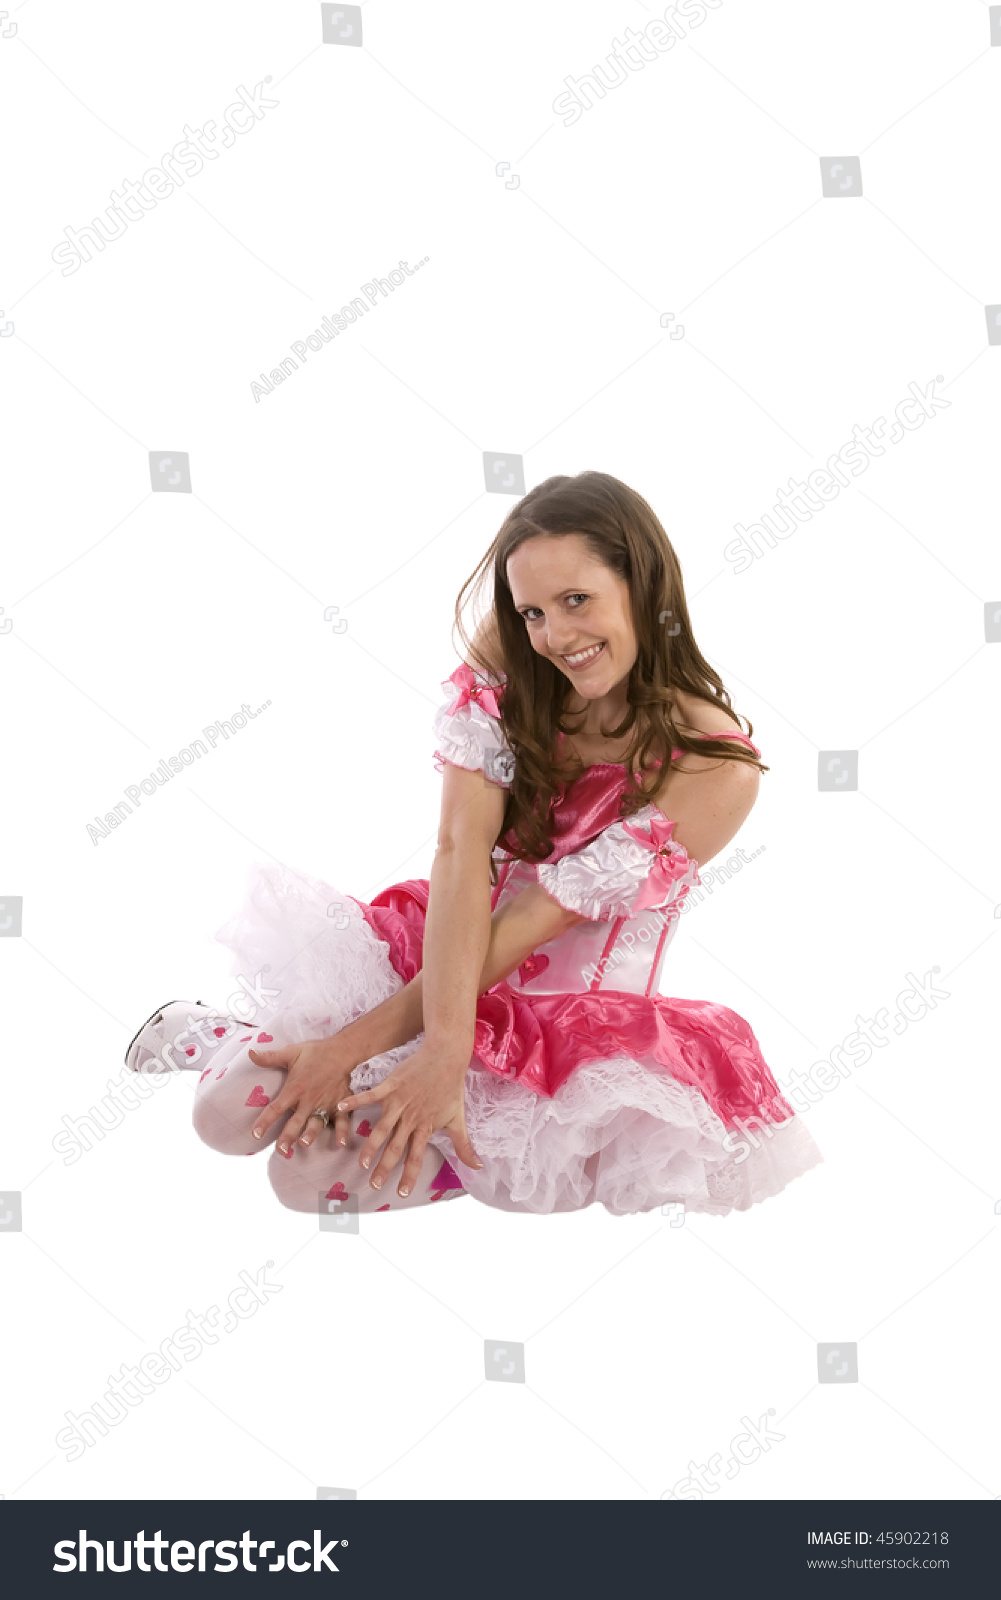 A woman being playful in a Valentines outfit showing her sexy side by her  expression on